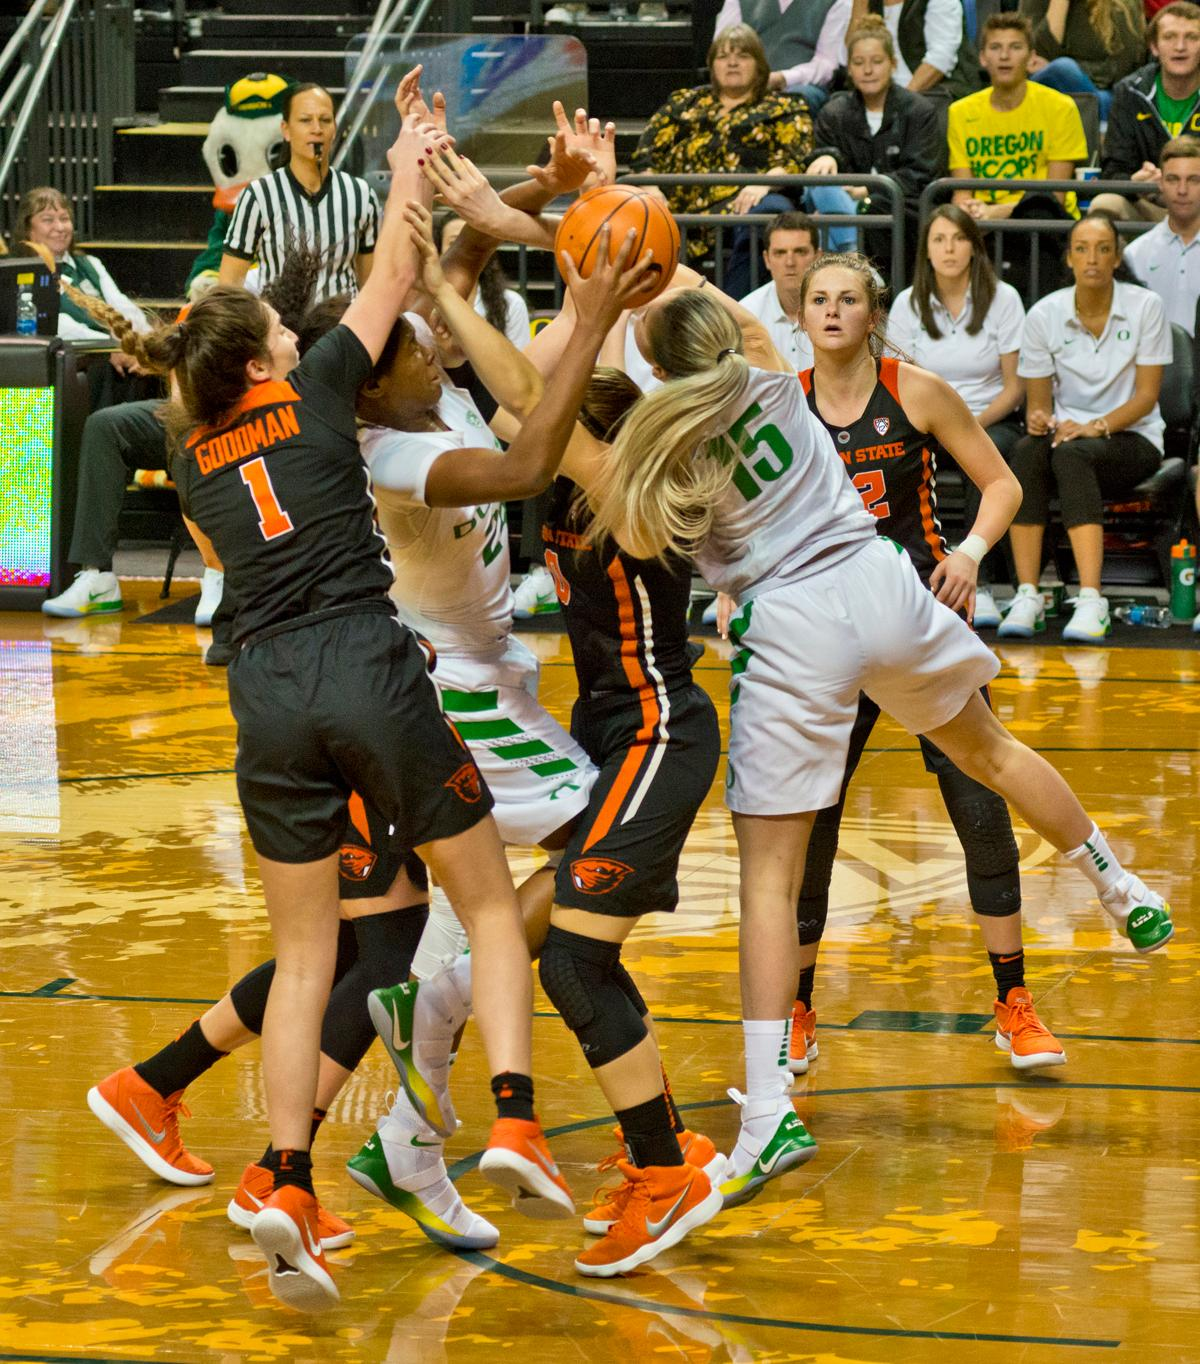 Oregon Ducks Ruthy Hebard (#24) fights to gain control of a rebound. The Oregon Ducks defeated the Oregon State Beavers 75-63 on Sunday afternoon in front of a crowd of 7,249 at Matthew Knight Arena. The Ducks and Beavers split the two game Civil War with the Beavers defeating the Ducks on Friday night in Corvallis. The Ducks had four players in double digits: Satou Sabally with 21 points, Maite Cazorla with 16, Sabrina Ionescu with 15, and Mallory McGwire with 14. The Ducks shot 48.4% from the floor compared to the Beavers 37.3%. The Ducks are now 7-1 in conference play. Photo by Dan Morrison, Oregon News Lab